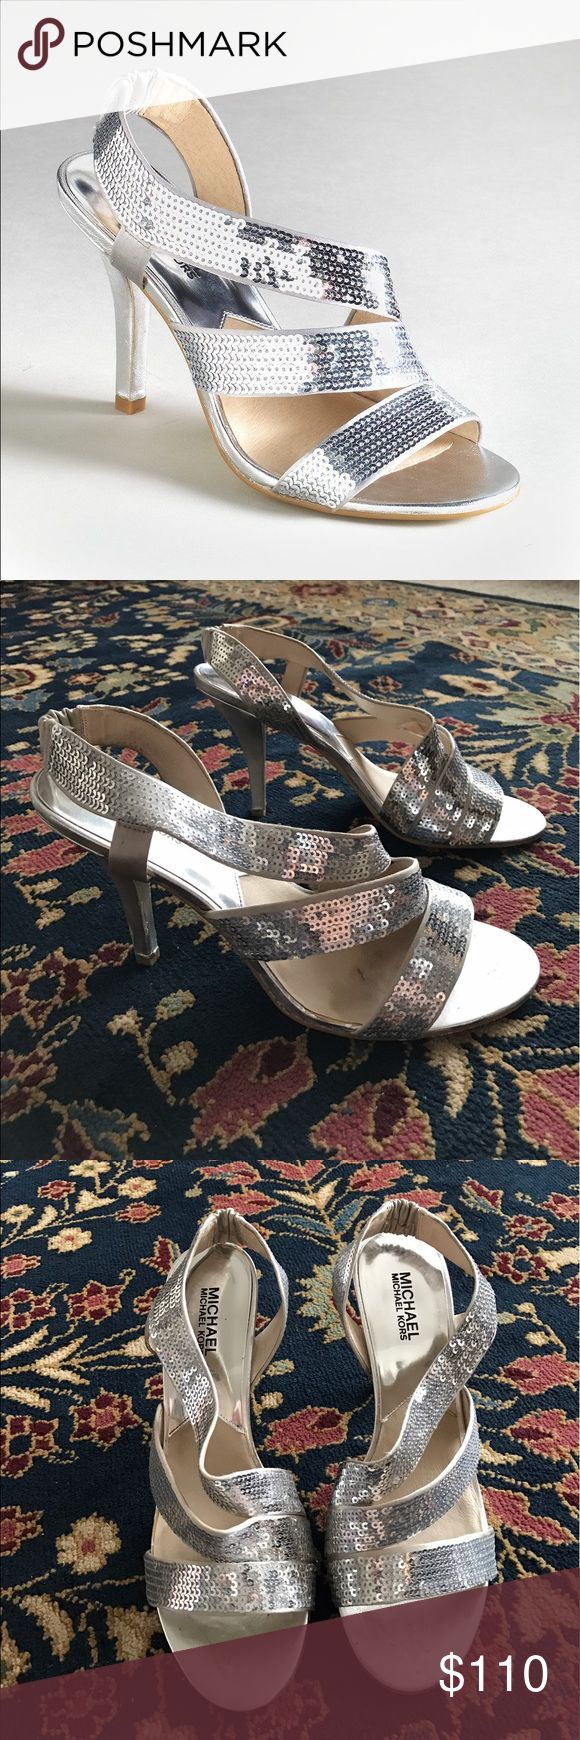 """Michael Kors Farris Womens Silver Sequin Heels Trip the light fantastic in these sequined Farris sandals by Michael Michael Kors. Your feet will fascinate in these strappy sandals, which glitter and gleam with rows of sparkling sequins. Color: silver fabric In excellent condition with minor blips on heel as seen in final photo. Stores with paper stuffing to keep shape.  Brand / Style: Michael Kors Farris Color: Silver Measurements: 4"""" heel Worn once! Elastic at Heel give a secure and…"""